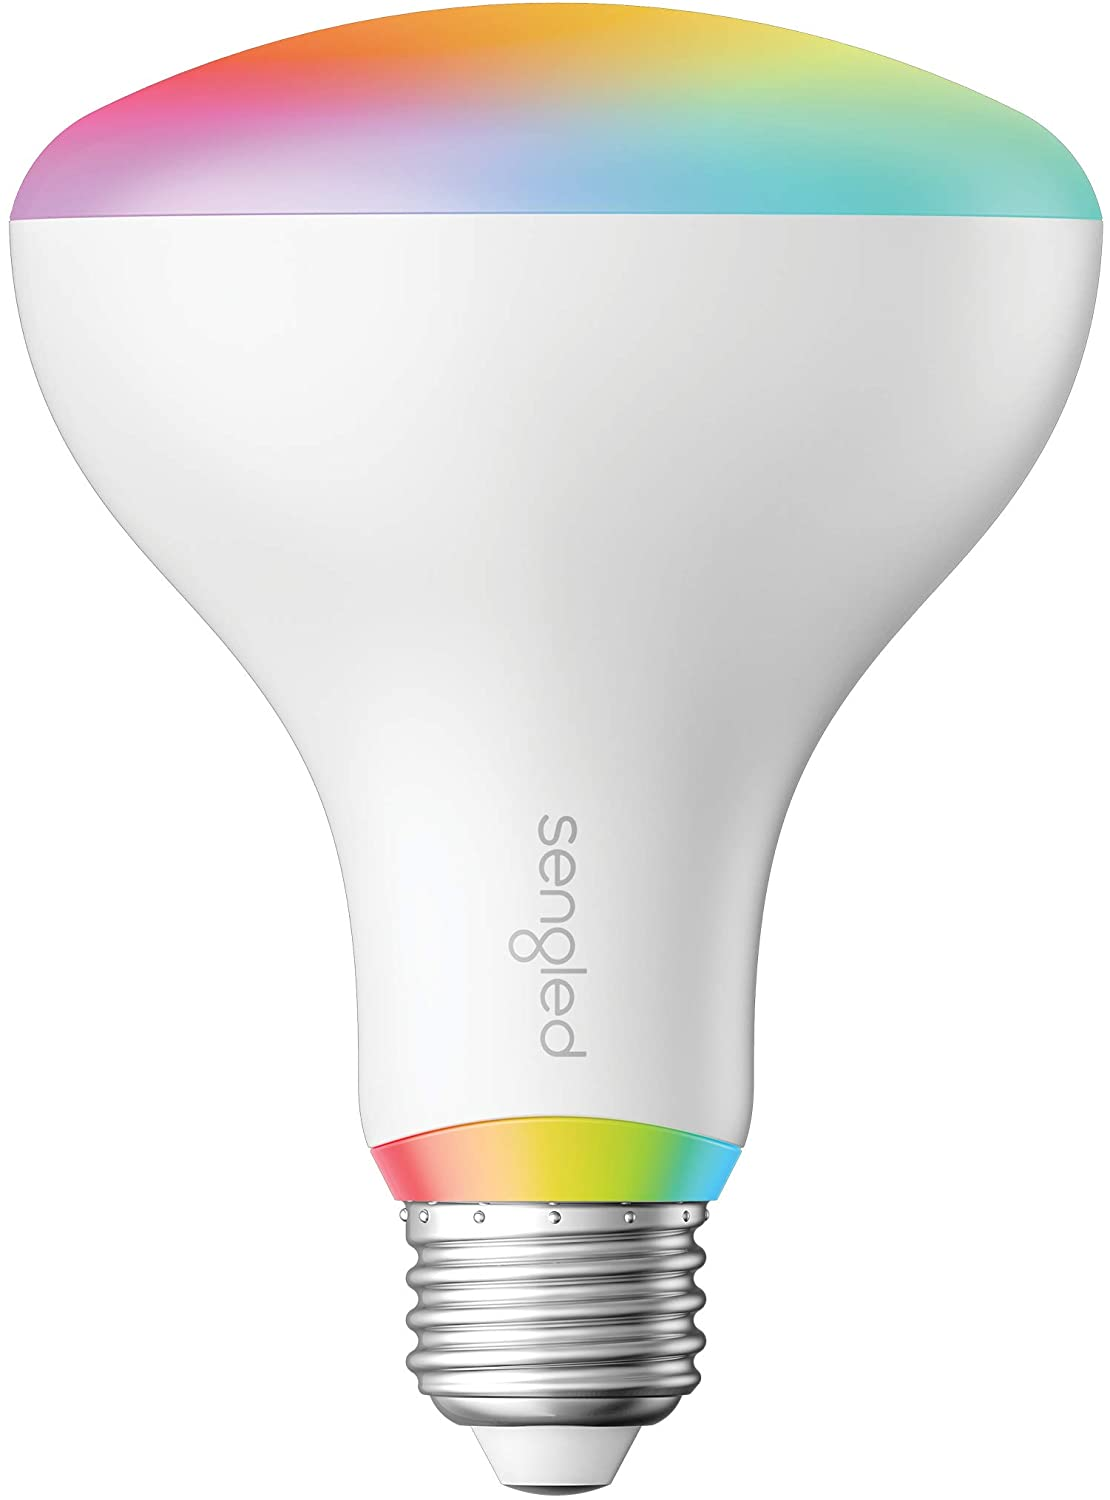 Sengled Smart Light Bulbs, Color Changing Light Bulb that Works with Alexa, Google Home, RGB Light Bulb, Alexa Light Bulbs BR30 E26 Multicolor Bulb, Hub Required, 75W Equivalent, 940LM, 1 Pack